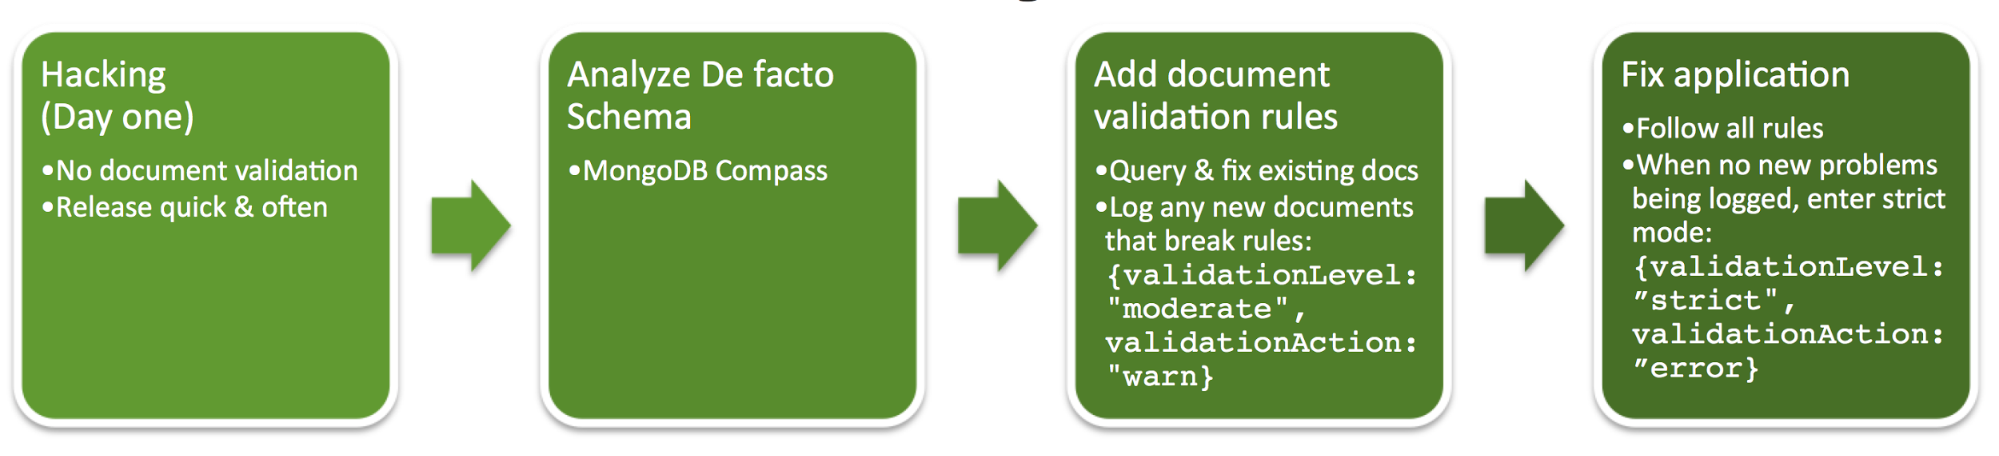 Document Validation - Part 1: Adding Just the Right Amount of